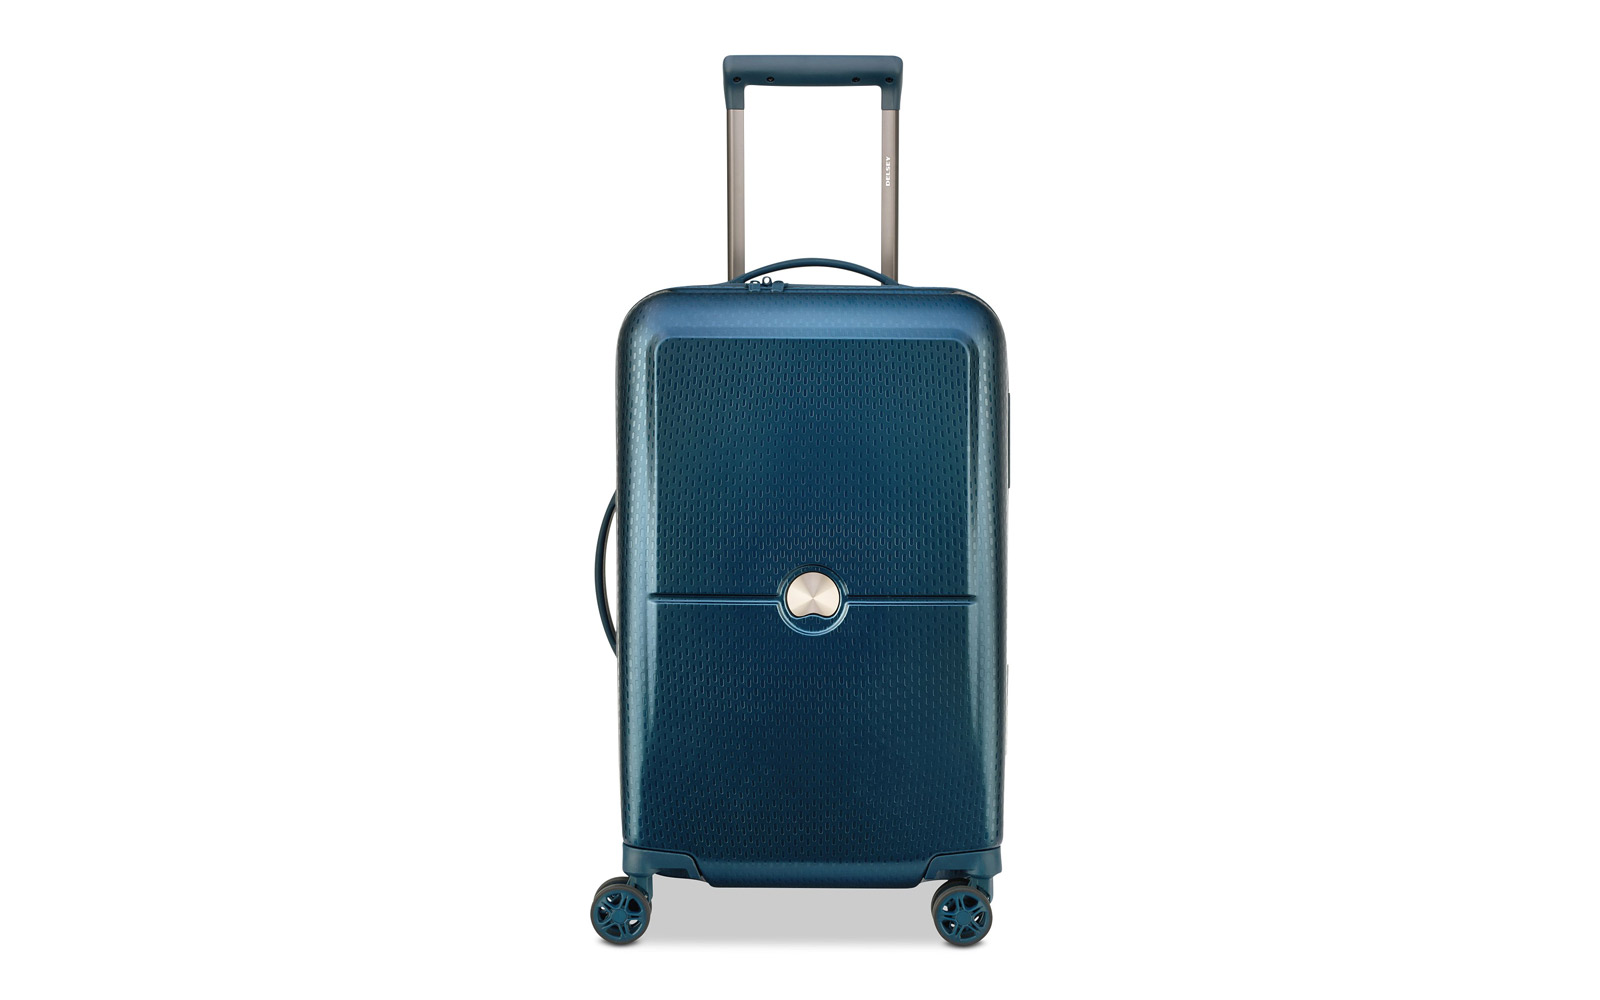 Lightweight Cabin Luggage The Best Carry On Luggage According To Travel Editors Travel